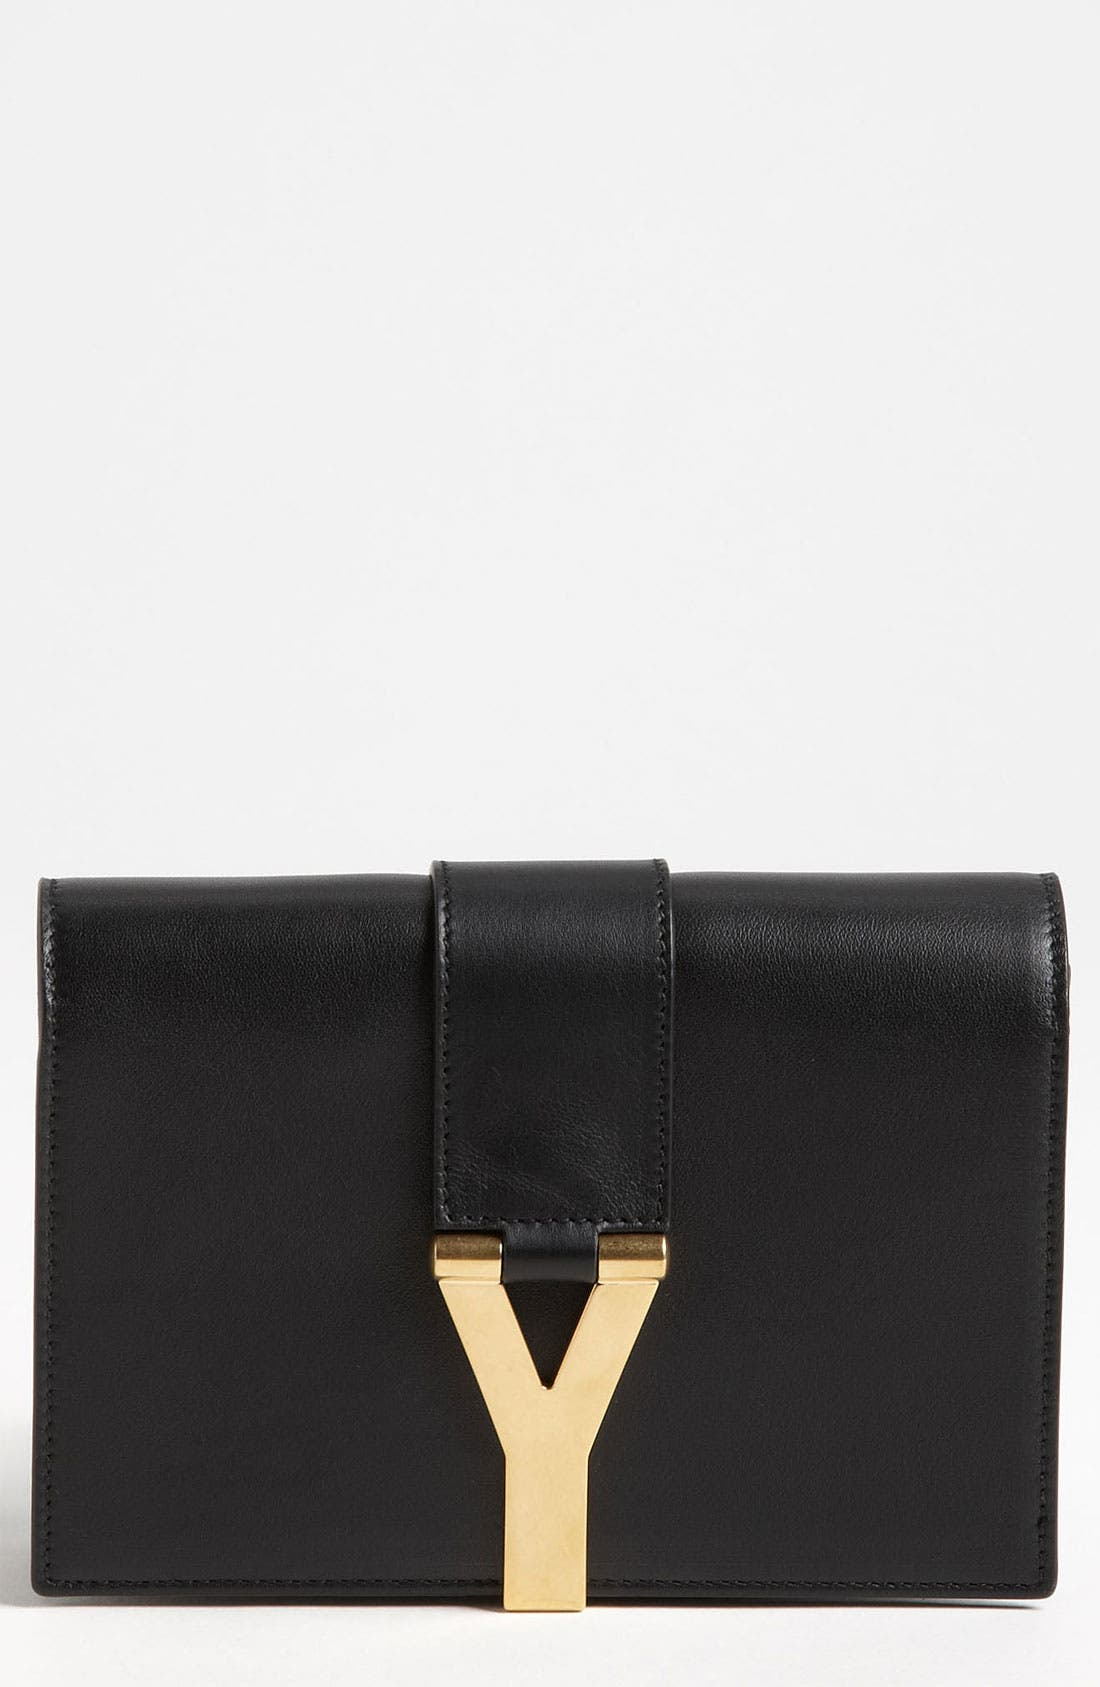 Alternate Image 1 Selected - Saint Laurent 'Y Chain - Mini' Leather Handbag